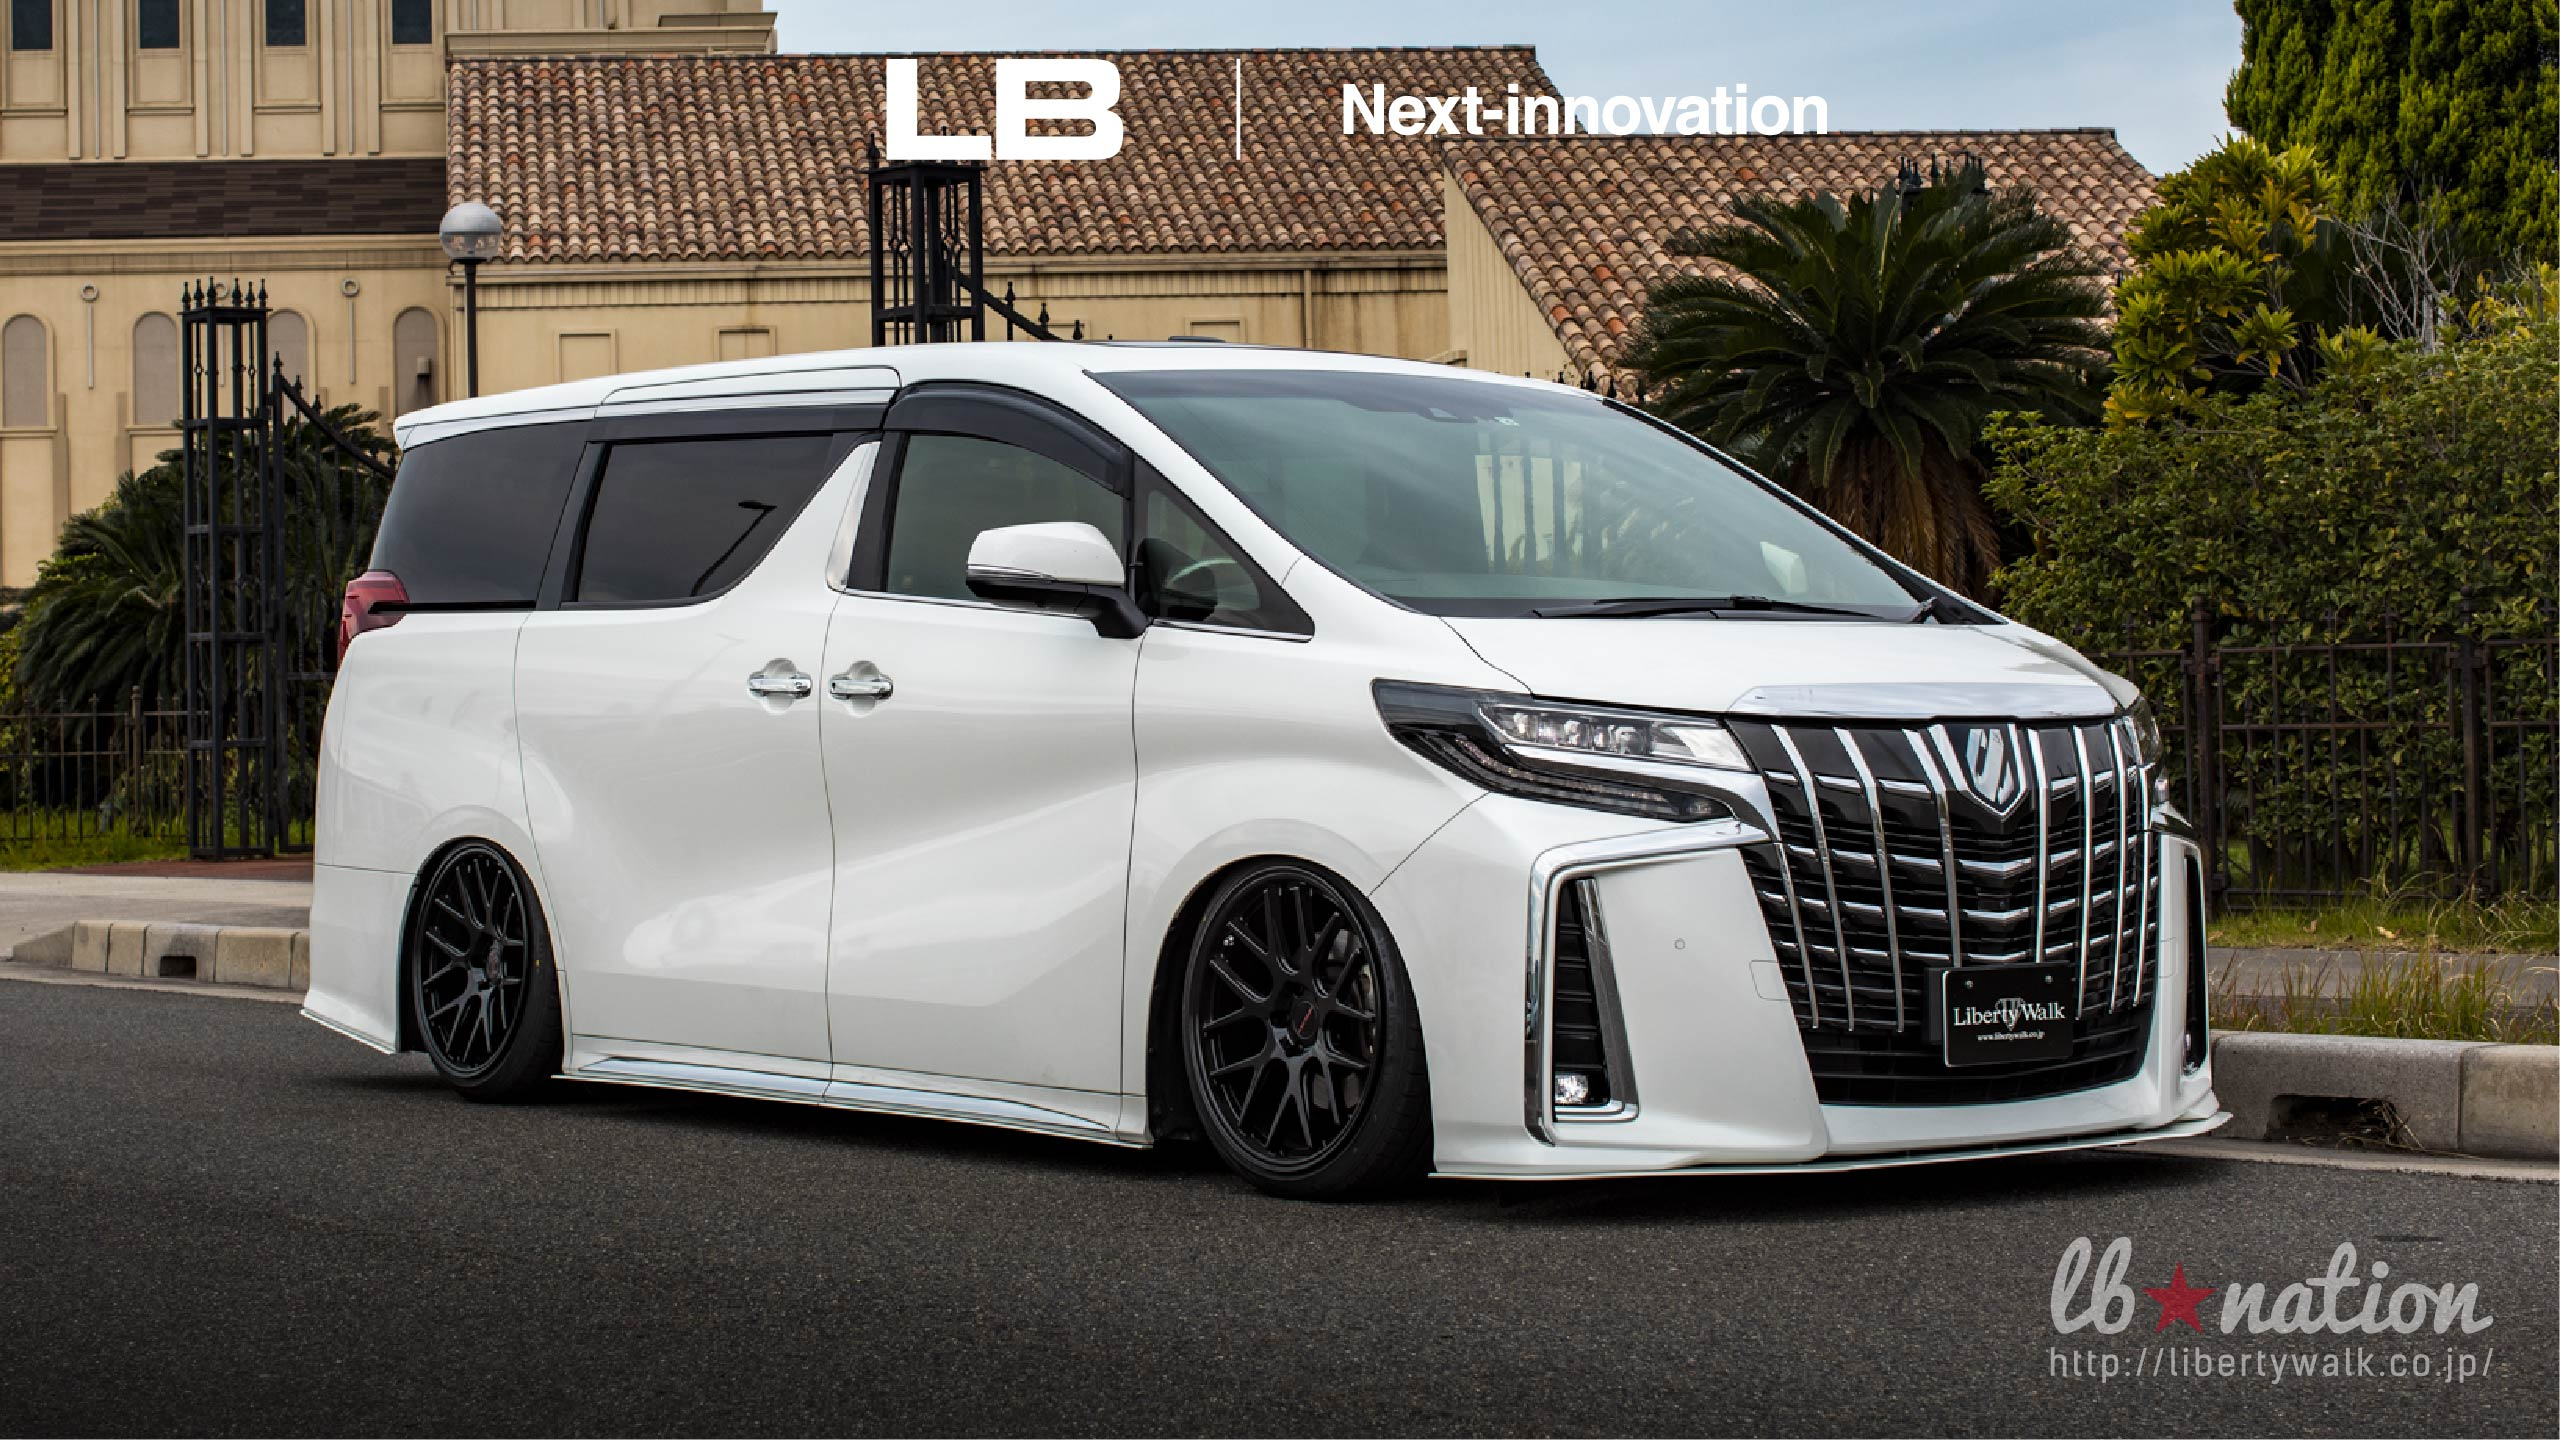 13-50 lb★nation × Next innovation TOYOTA 30ALPHARD